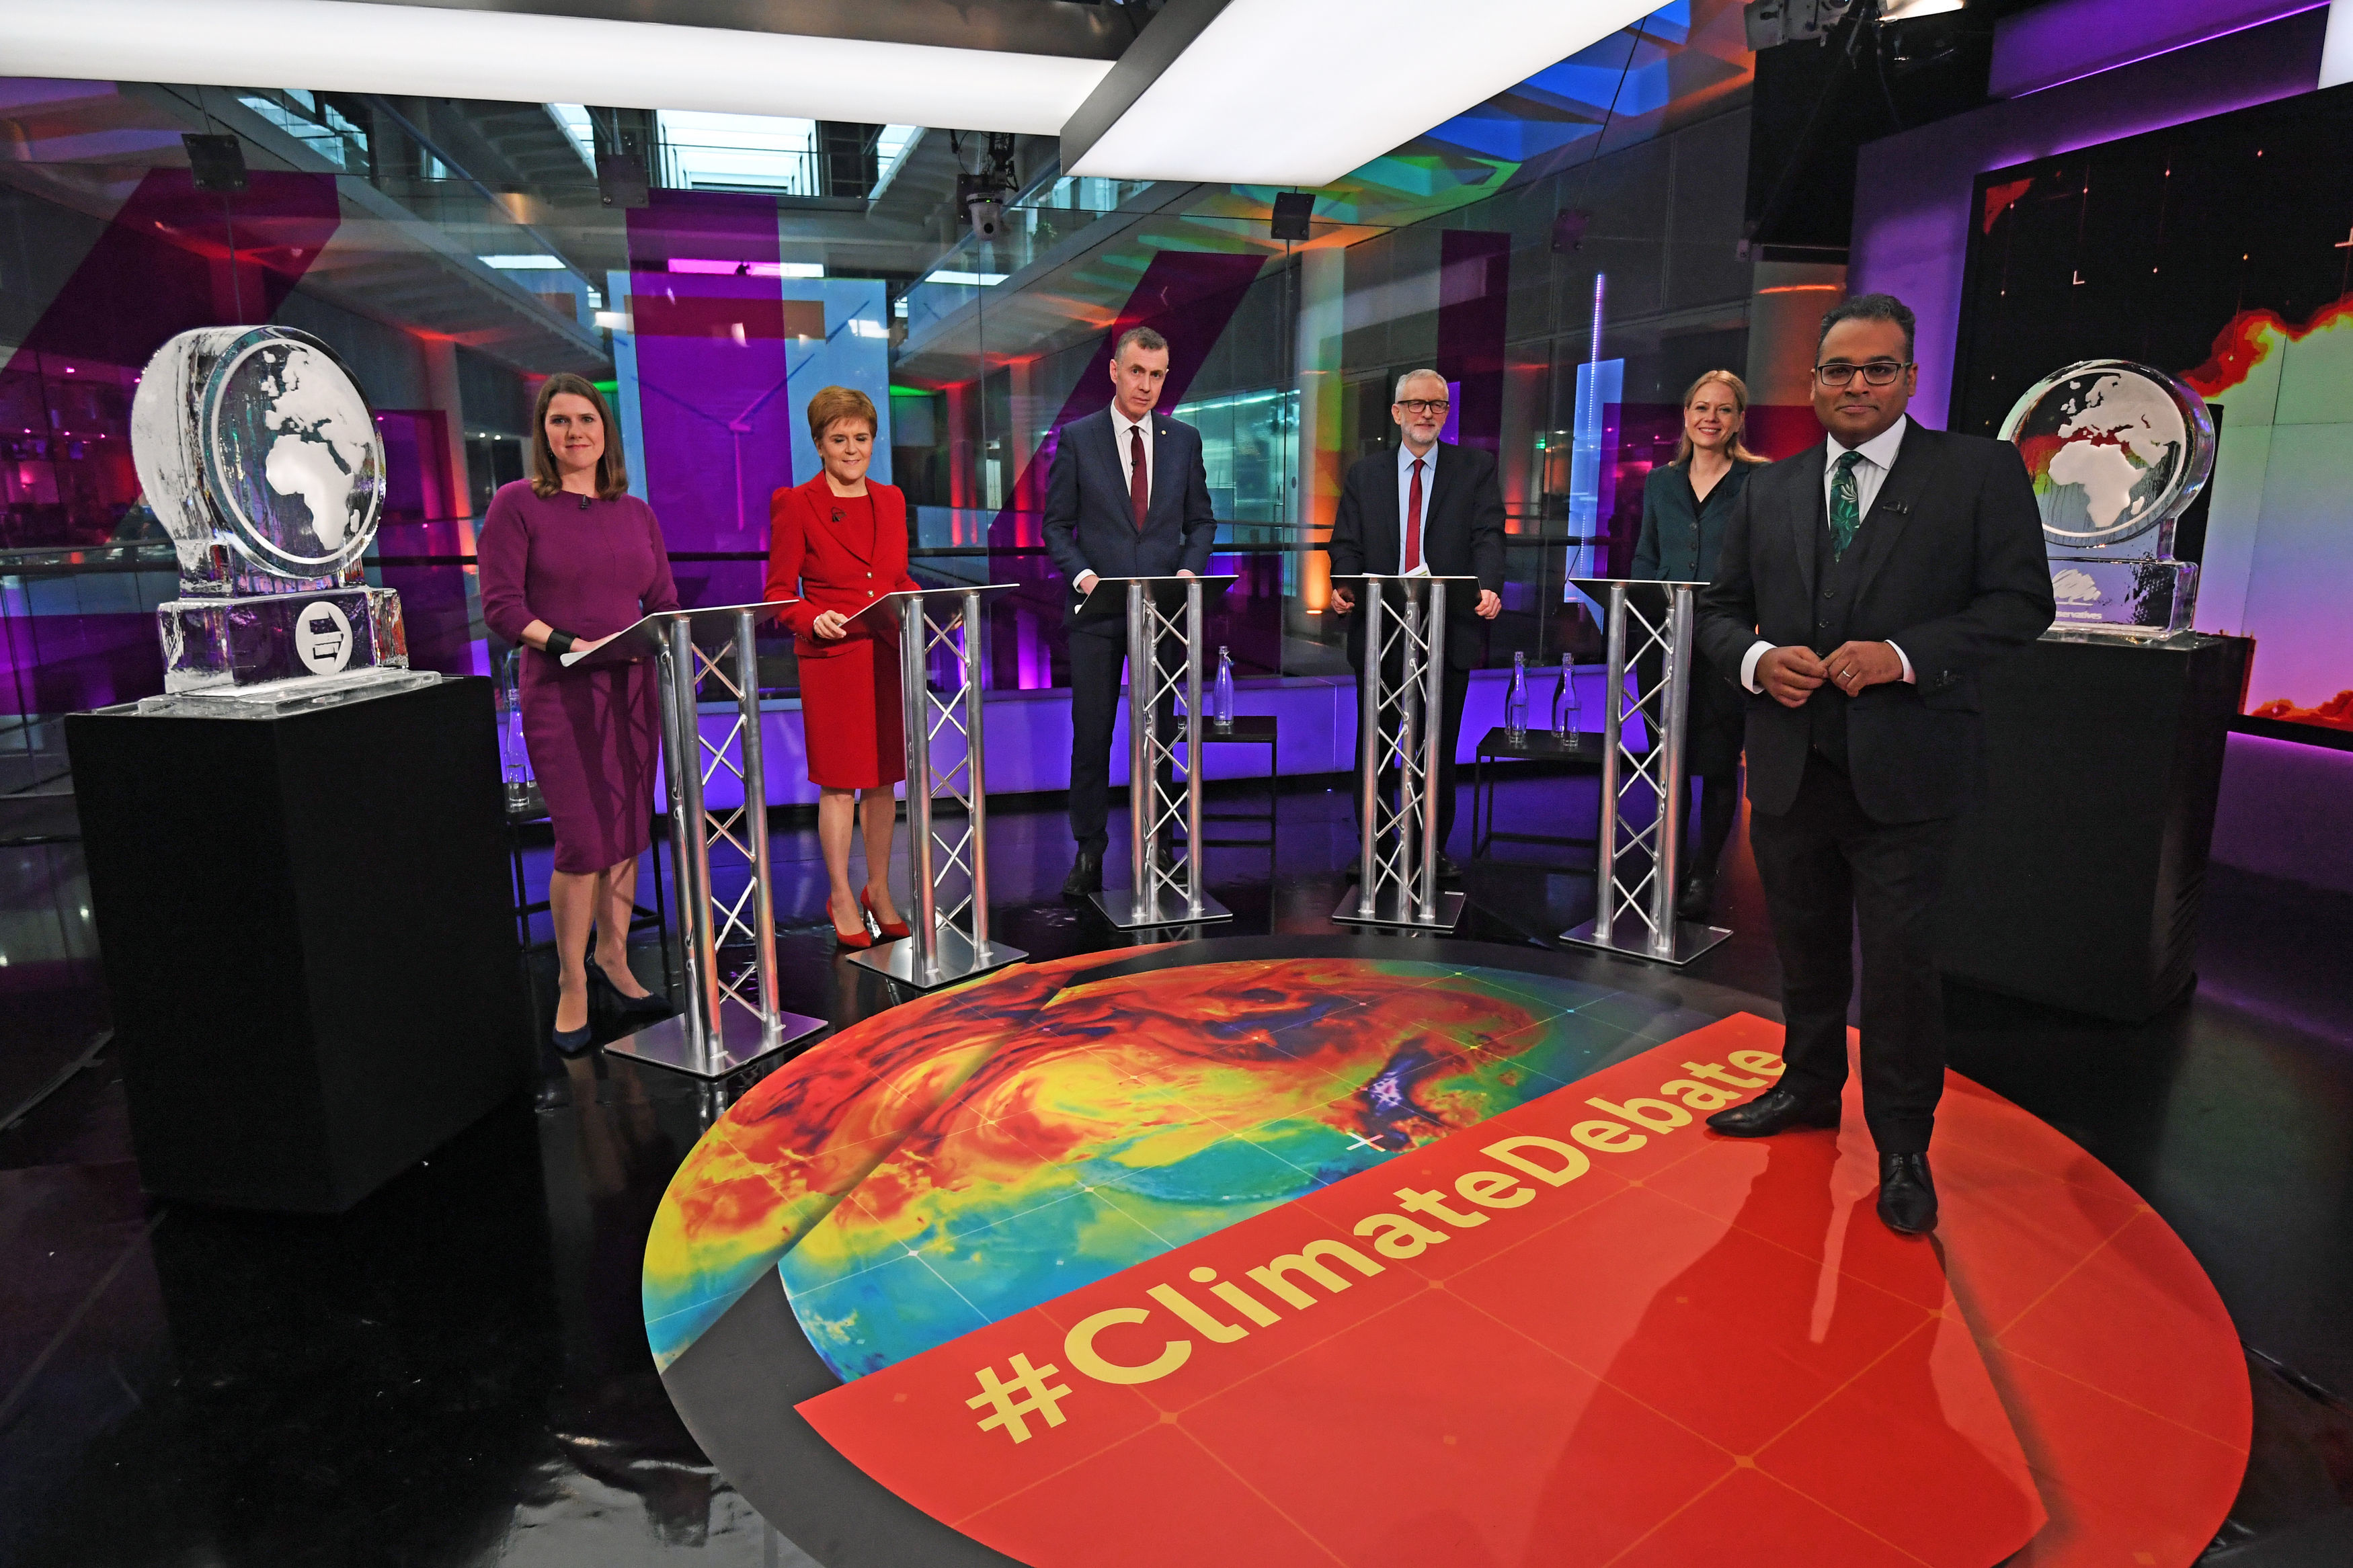 RETRANSMITTED WITH CORRECT CAPTION Krishnan Guru-Murthy (foreground) with (rear left to right) Liberal Democrat leader Jo Swinson, SNP leader Nicola Sturgeon, Plaid Cymru leader Adam Price, Labour Party leader Jeremy Corbyn and Green Party Co-Leader Sian Berry, standing next to ice sculptures representing the Brexit Party and Conservative Party who didn't appear at the event, before the start of the Channel 4 News' General Election climate debate at ITN Studios in Holborn, central London.